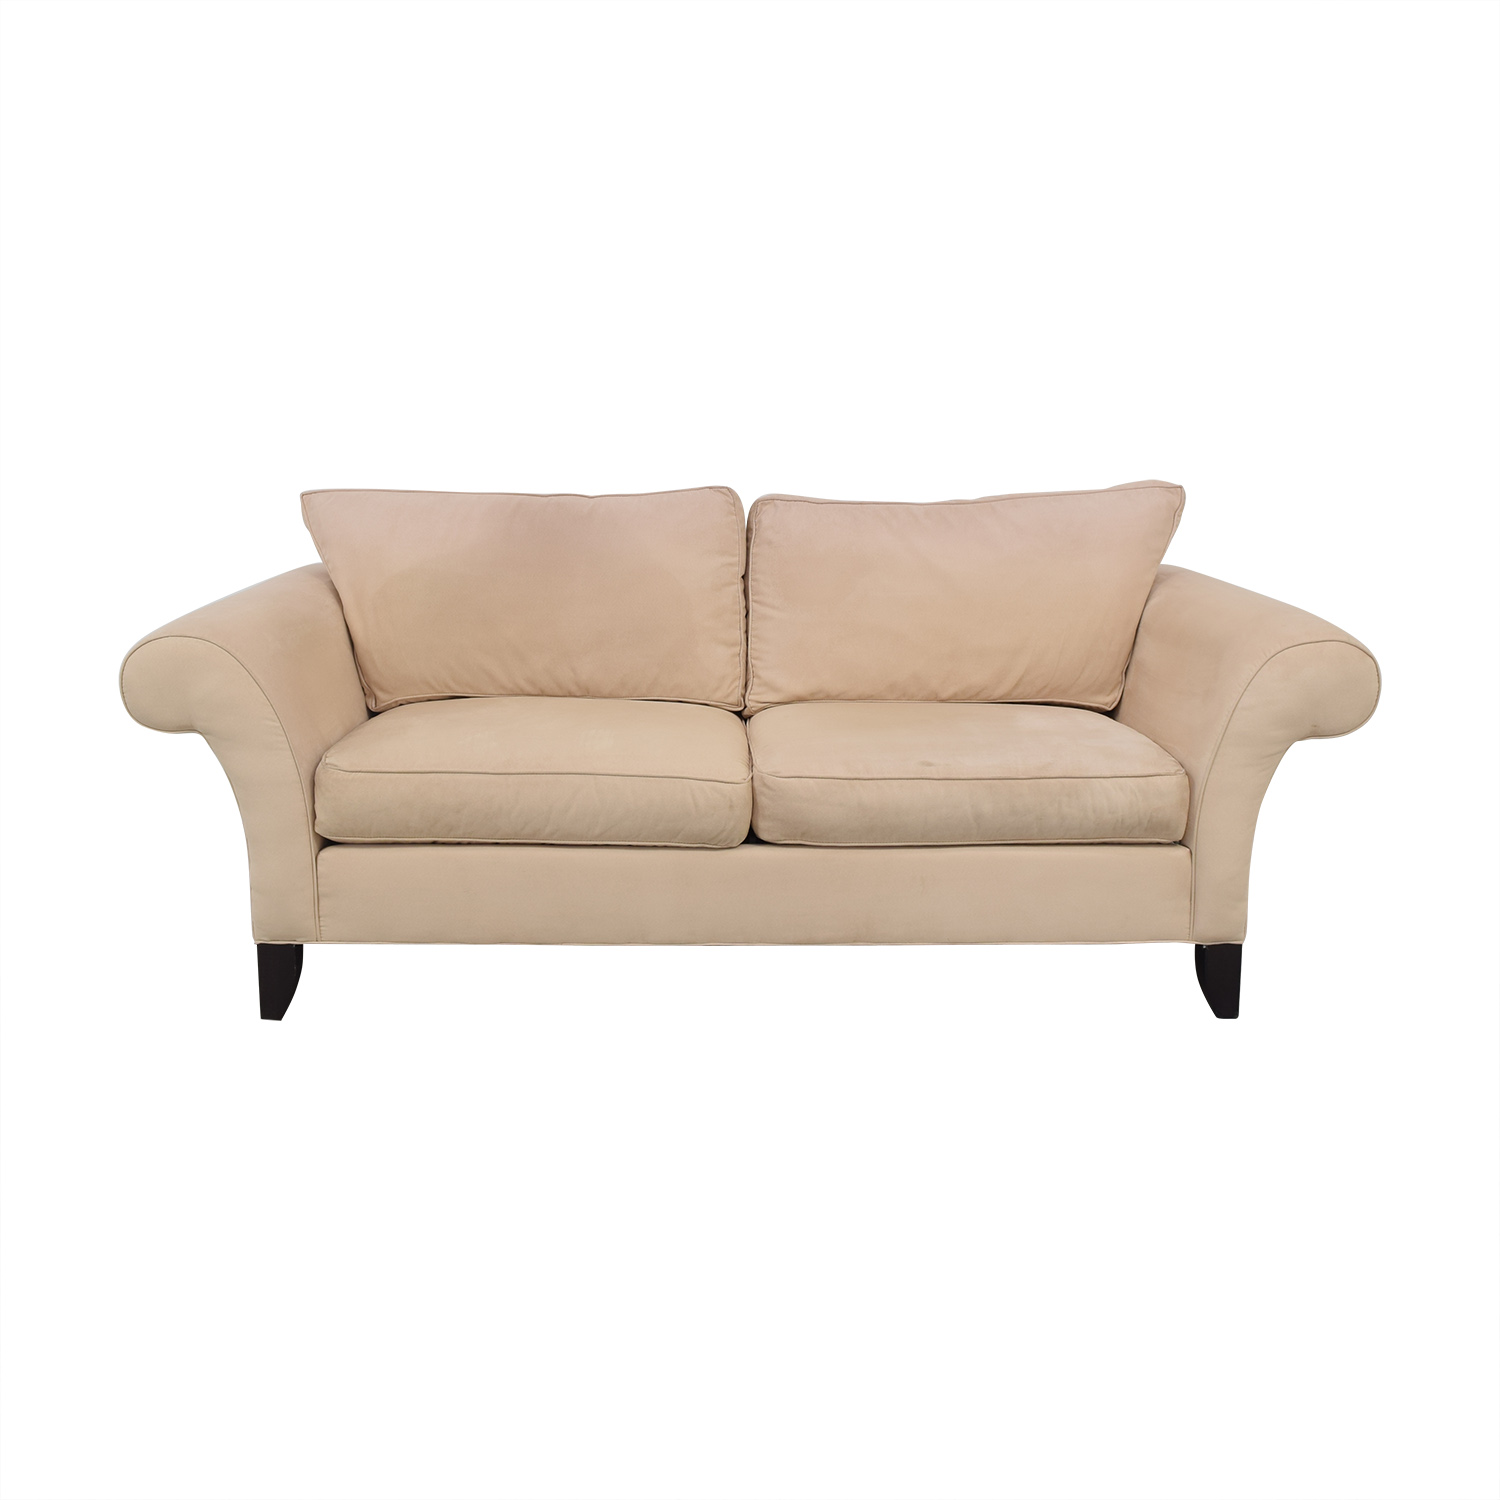 Ethan Allen Ethan Allen Roll Arm Sofa ct